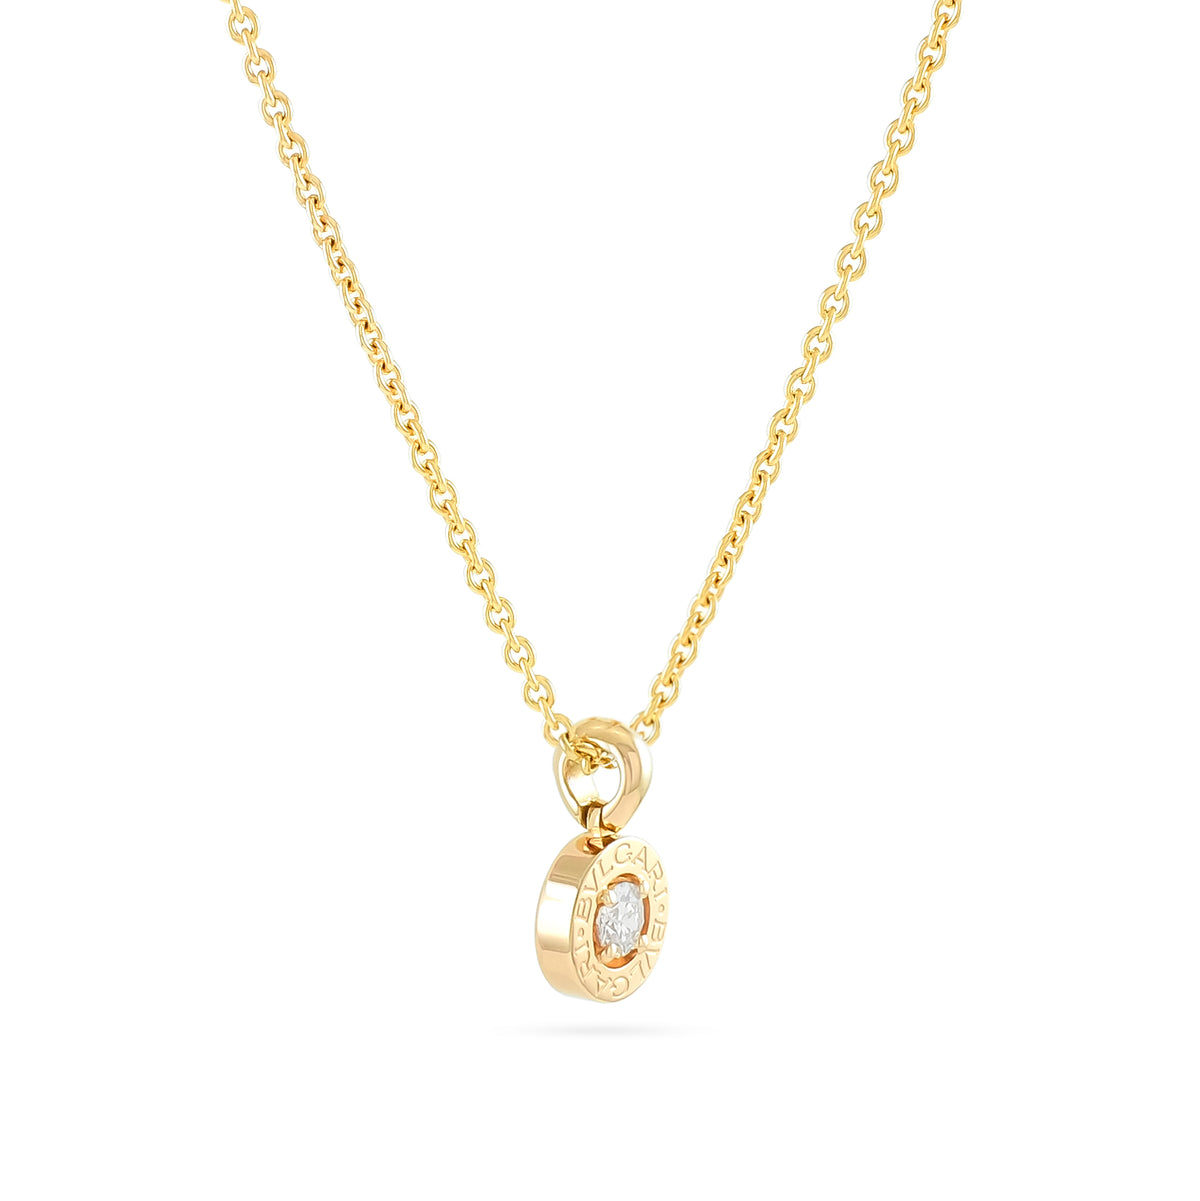 Bvlgari 18ct Rose Gold Diamond Pendant